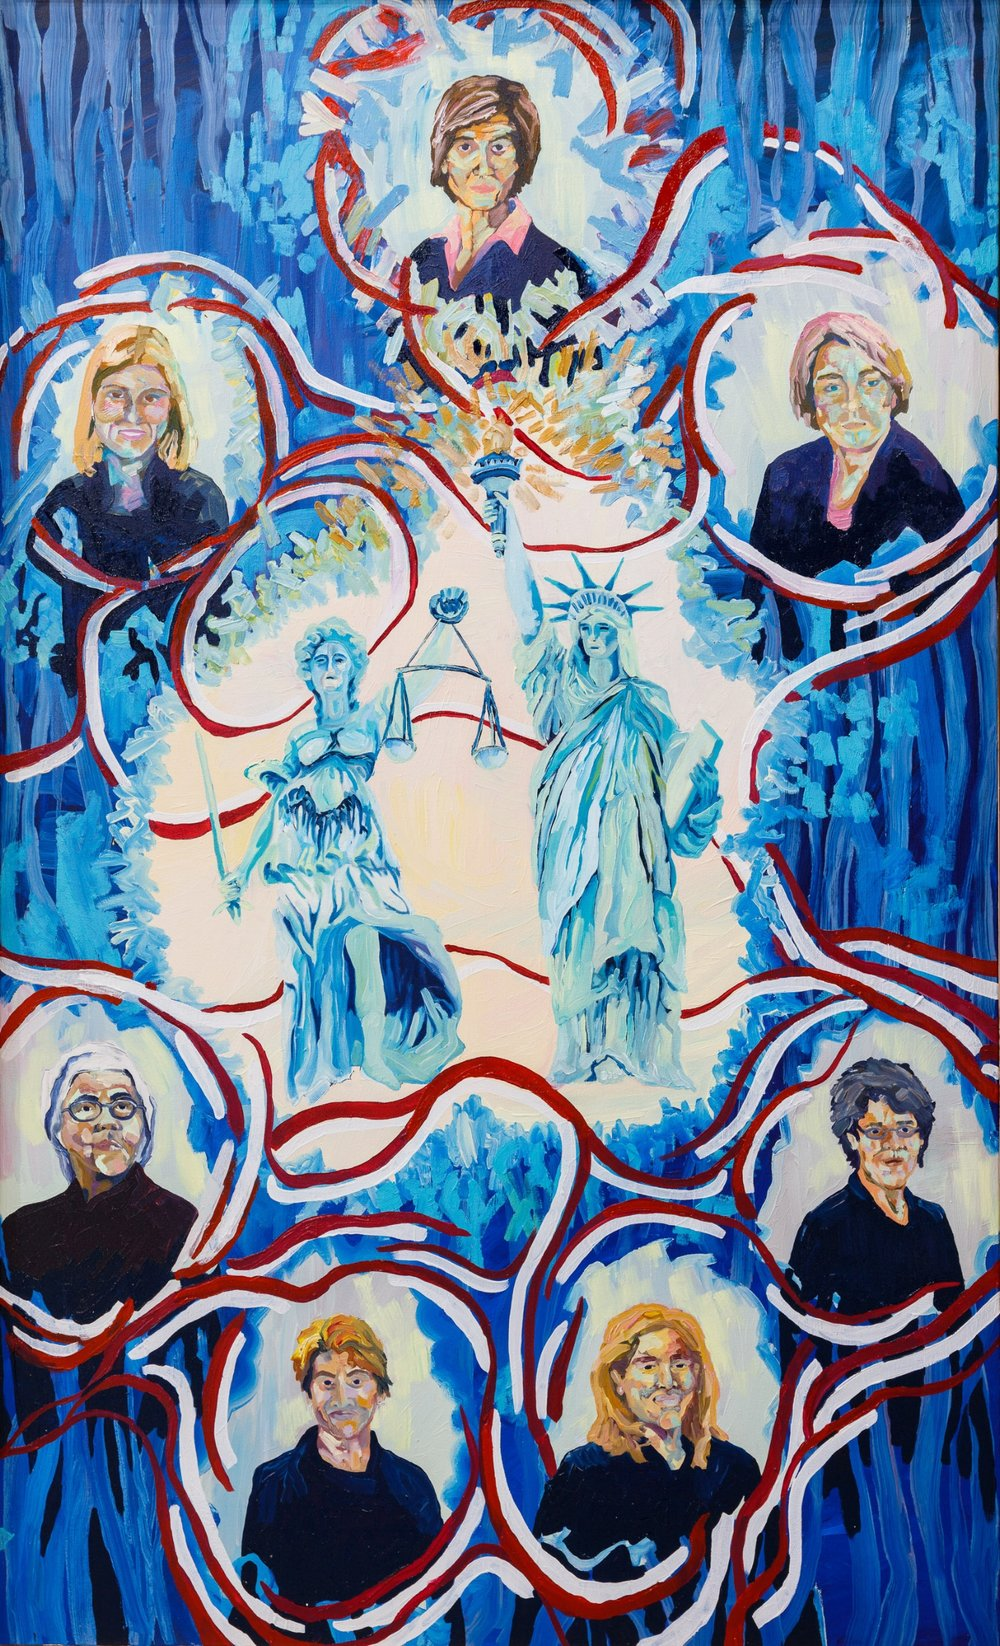 Liberty with Justice-Yates, Healey, Swanson, Dein, Donnelly, Burroughs, Brinkema